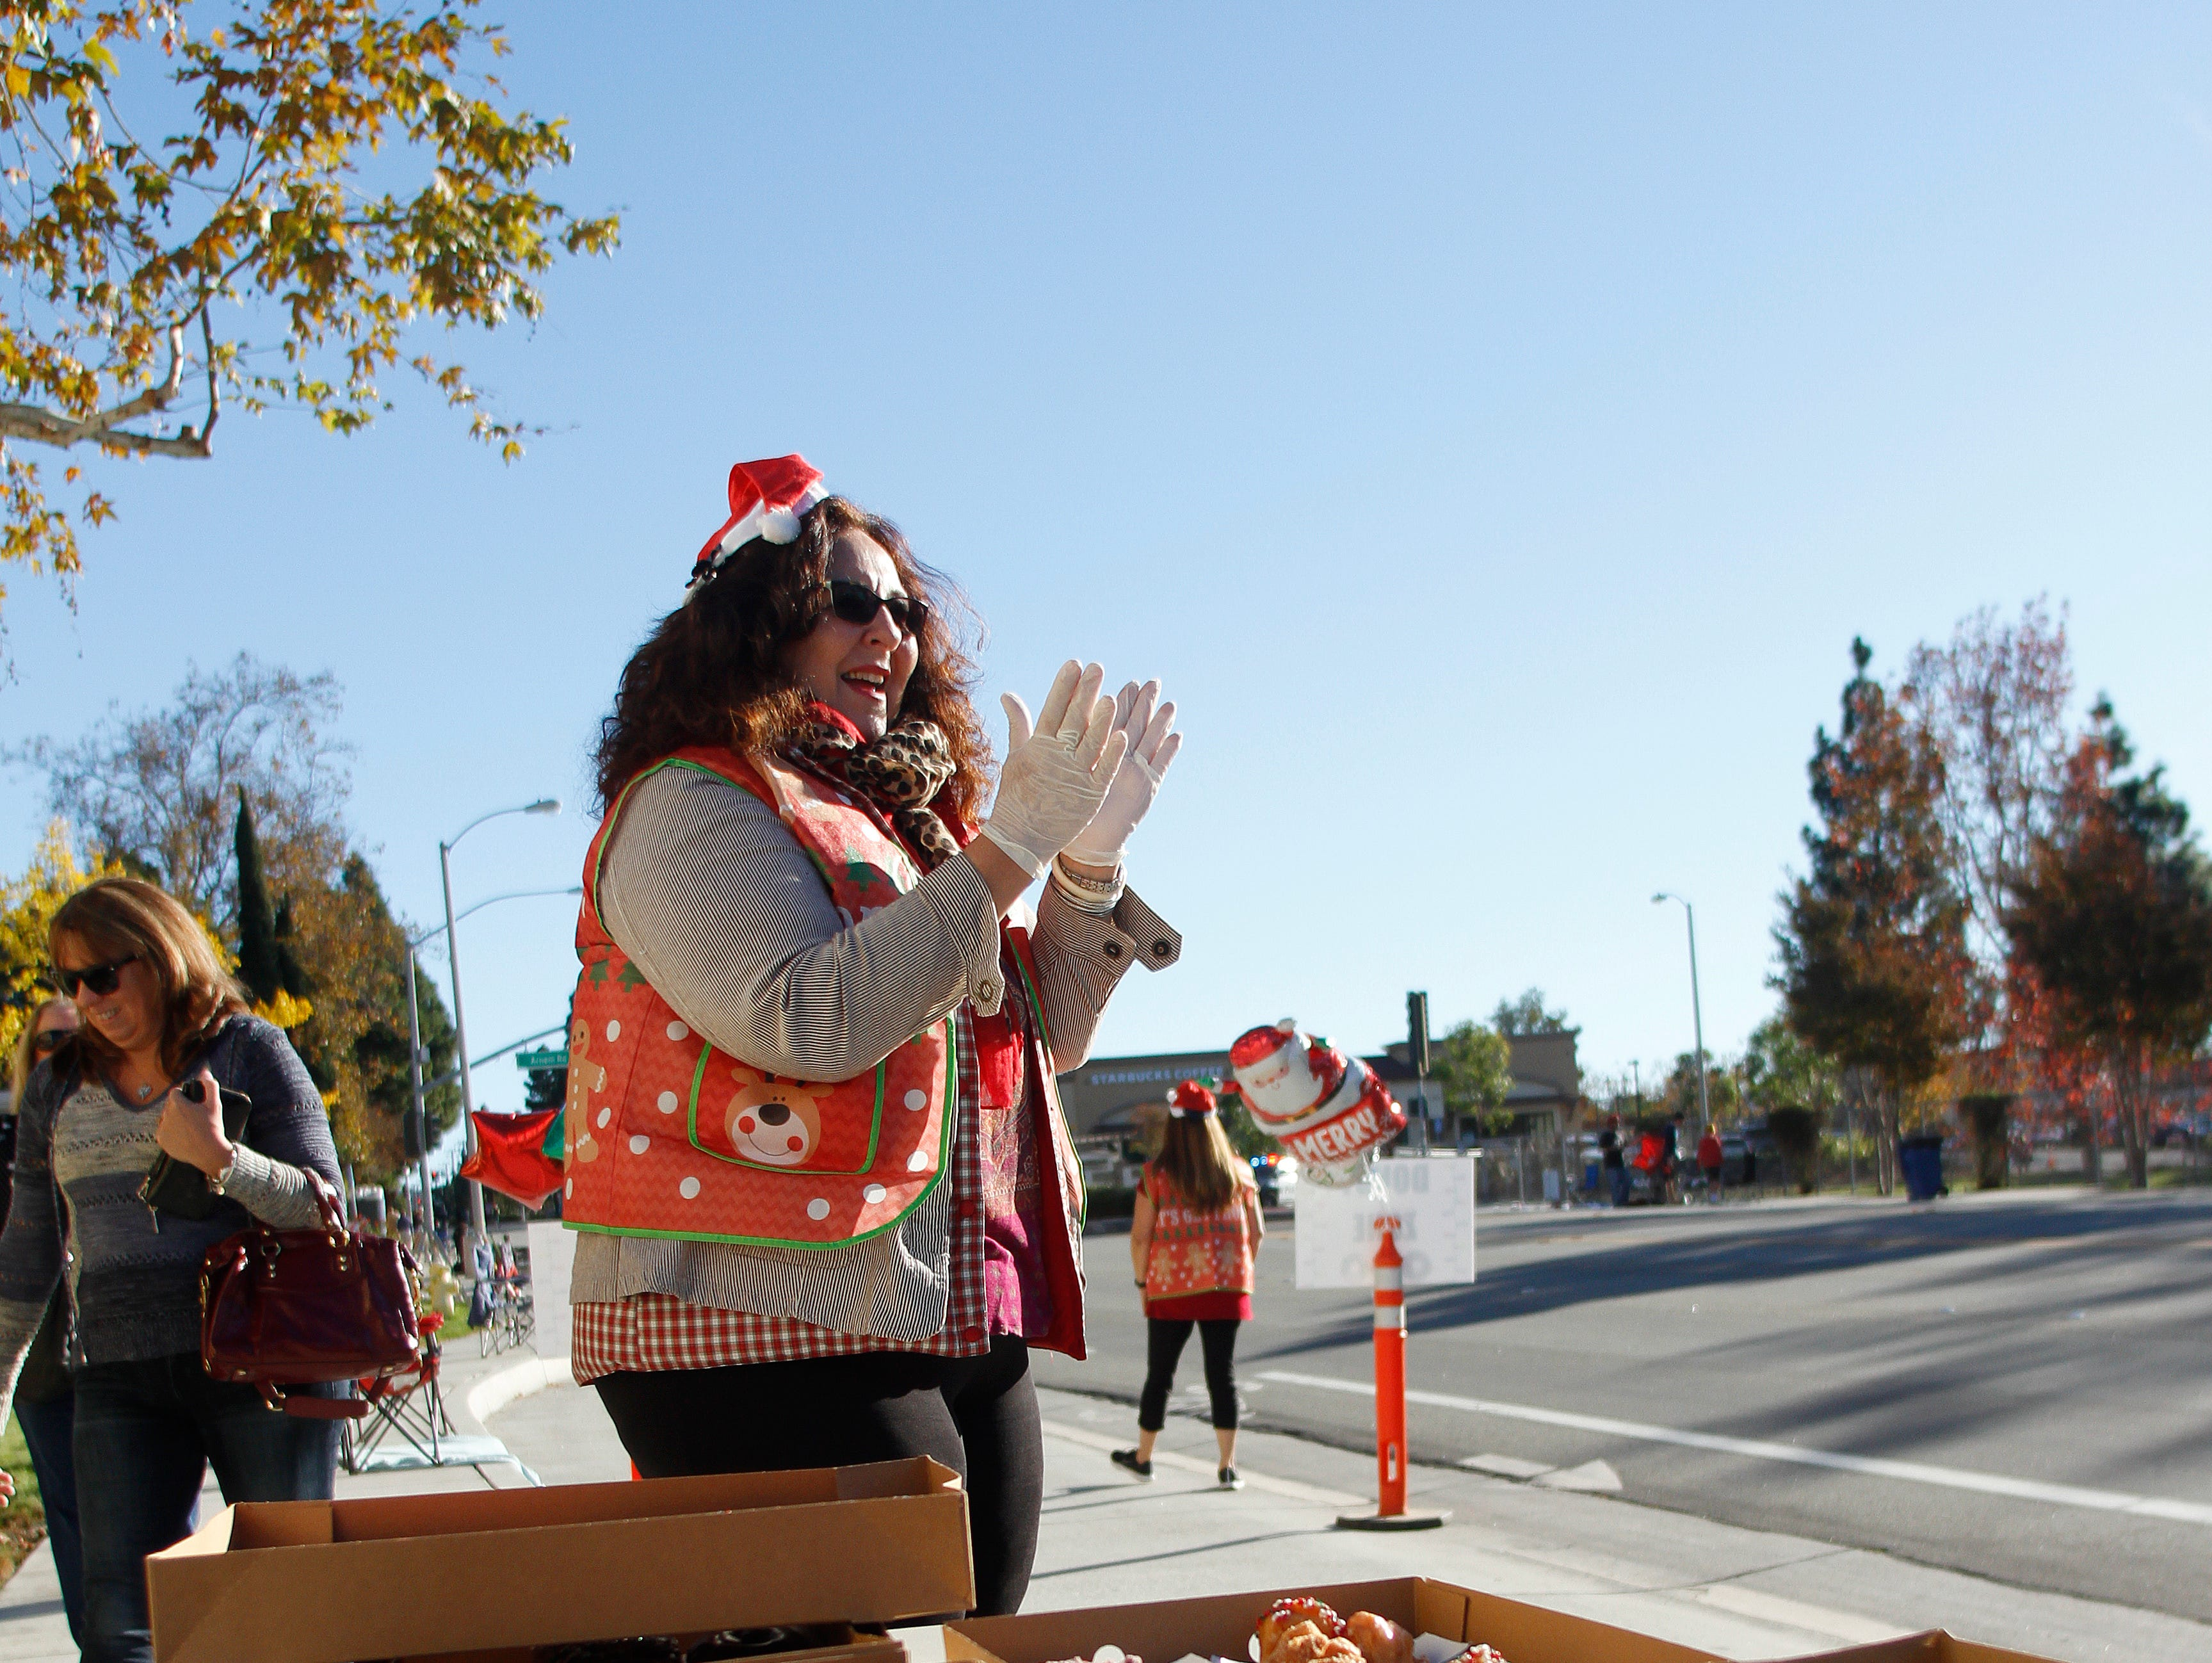 Volunteer Linda Lamb cheers for 5K participants as she stands ready to hand out doughnuts and water at an aid station during Christmas festivities in Camarillo that also included a parade.